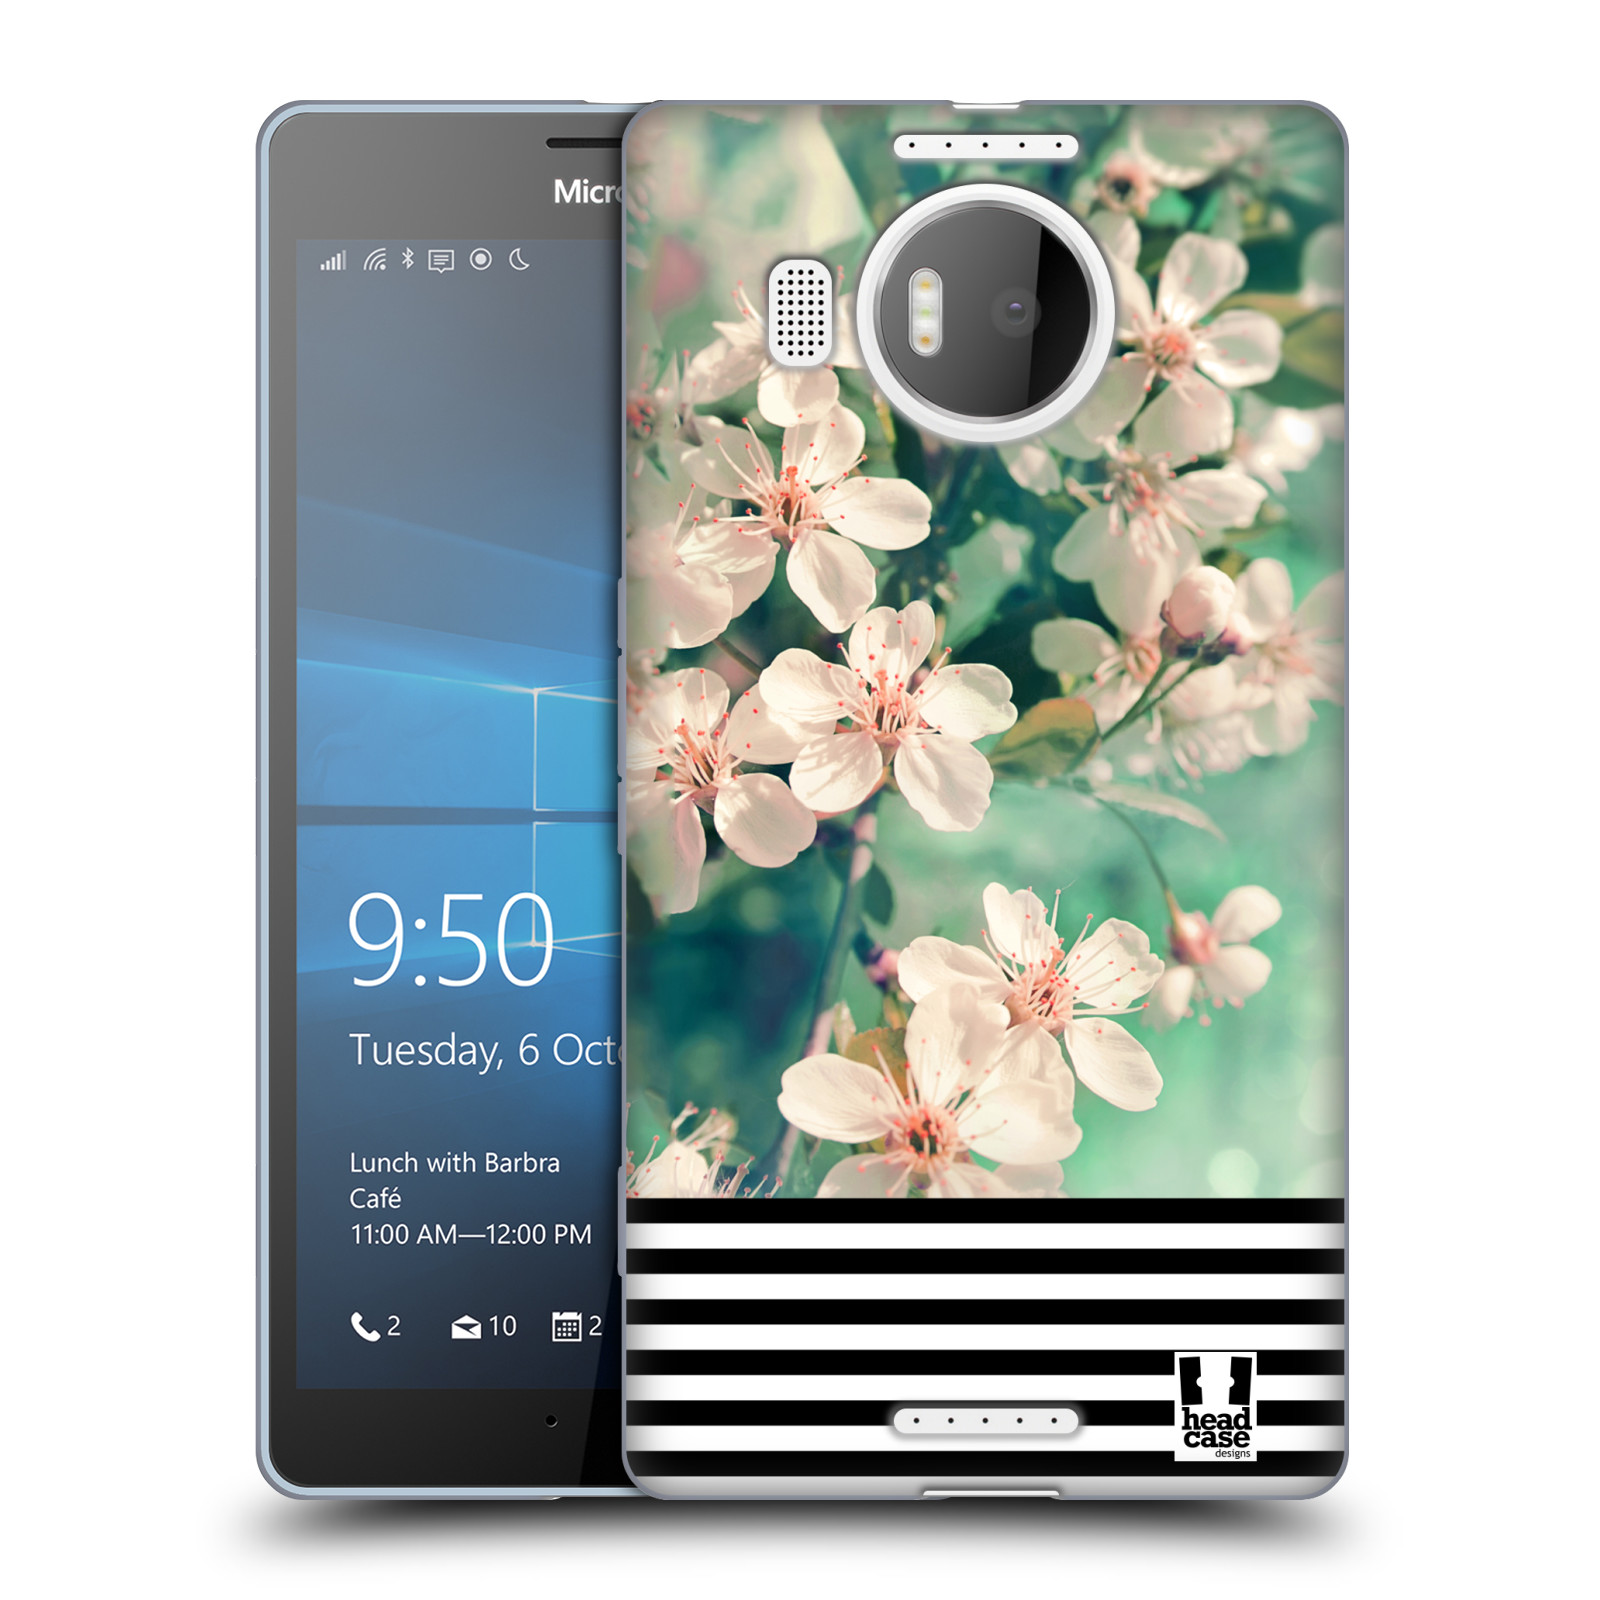 Silikonové pouzdro na mobil Microsoft Lumia 950 XL HEAD CASE MIX FLORAL STRIPES